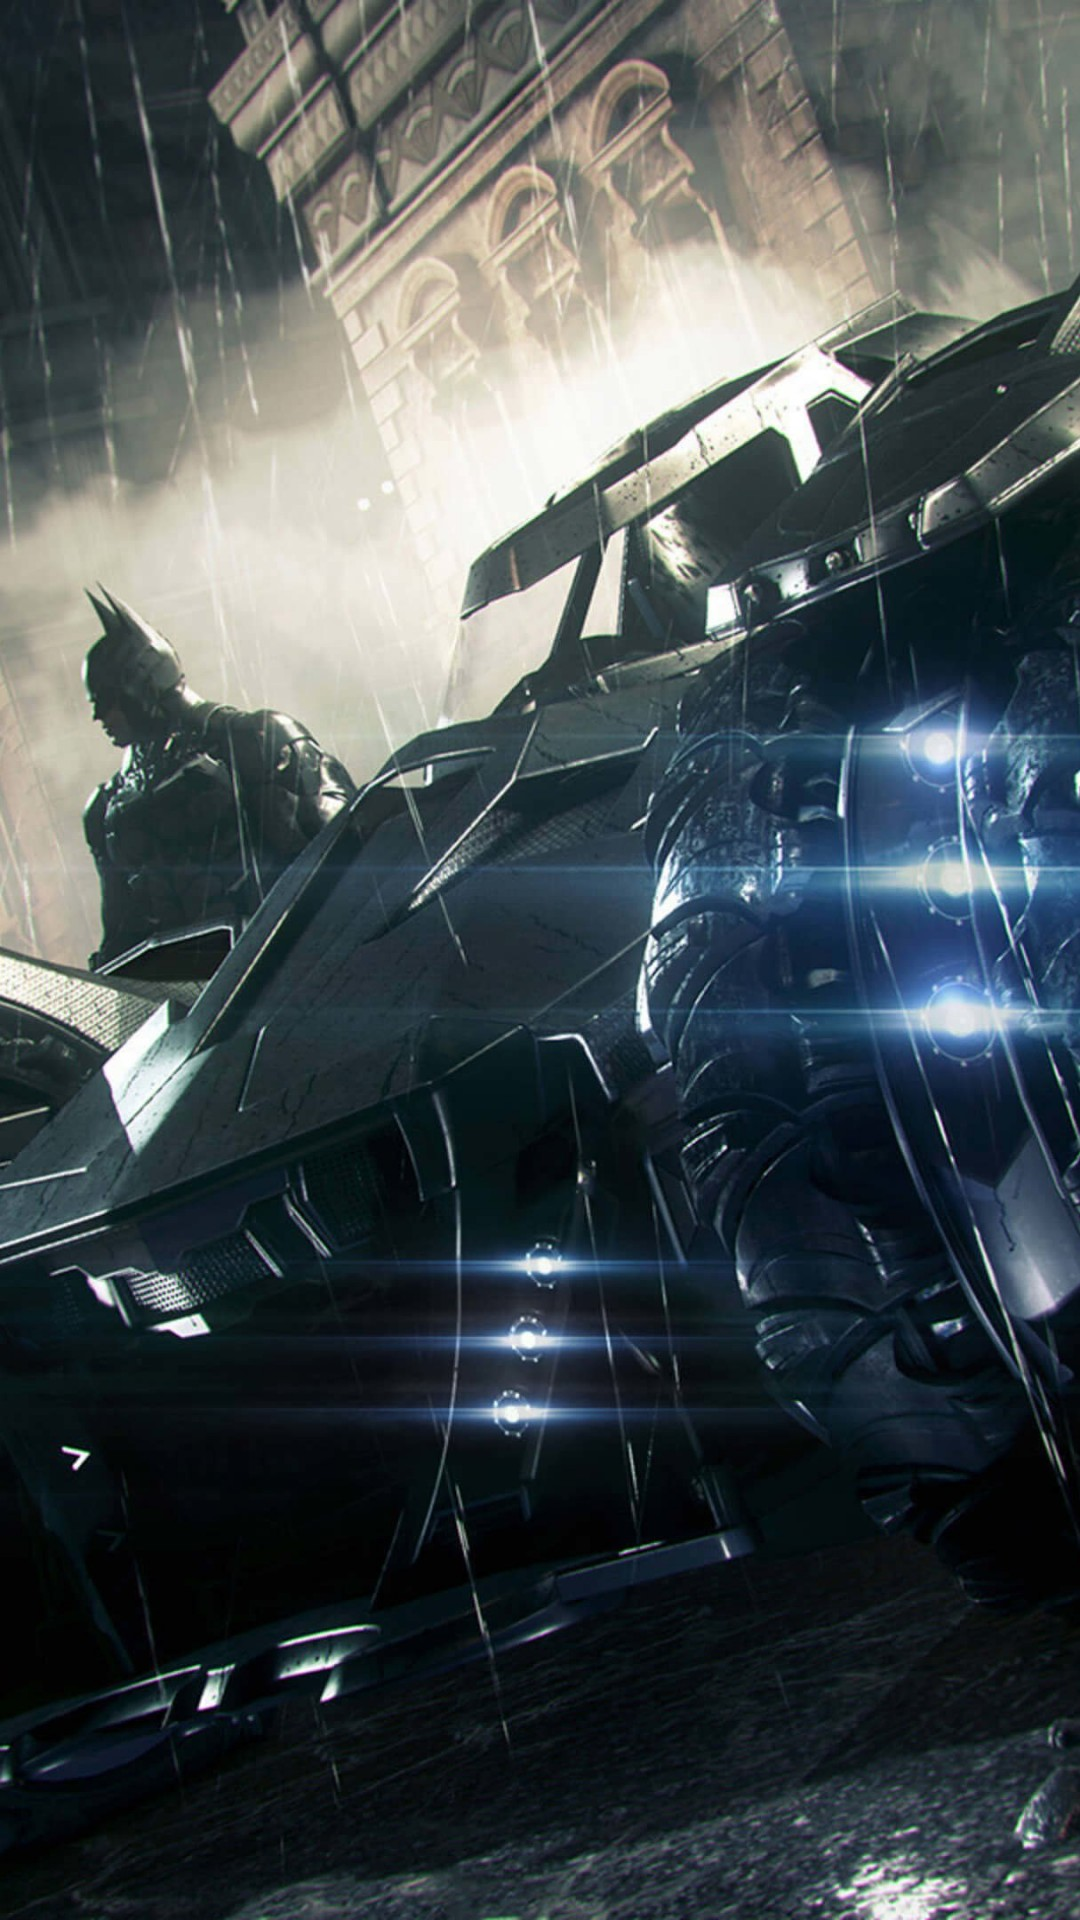 Batmobile - Batman Arkham Knight Wallpaper for SAMSUNG Galaxy Note 3